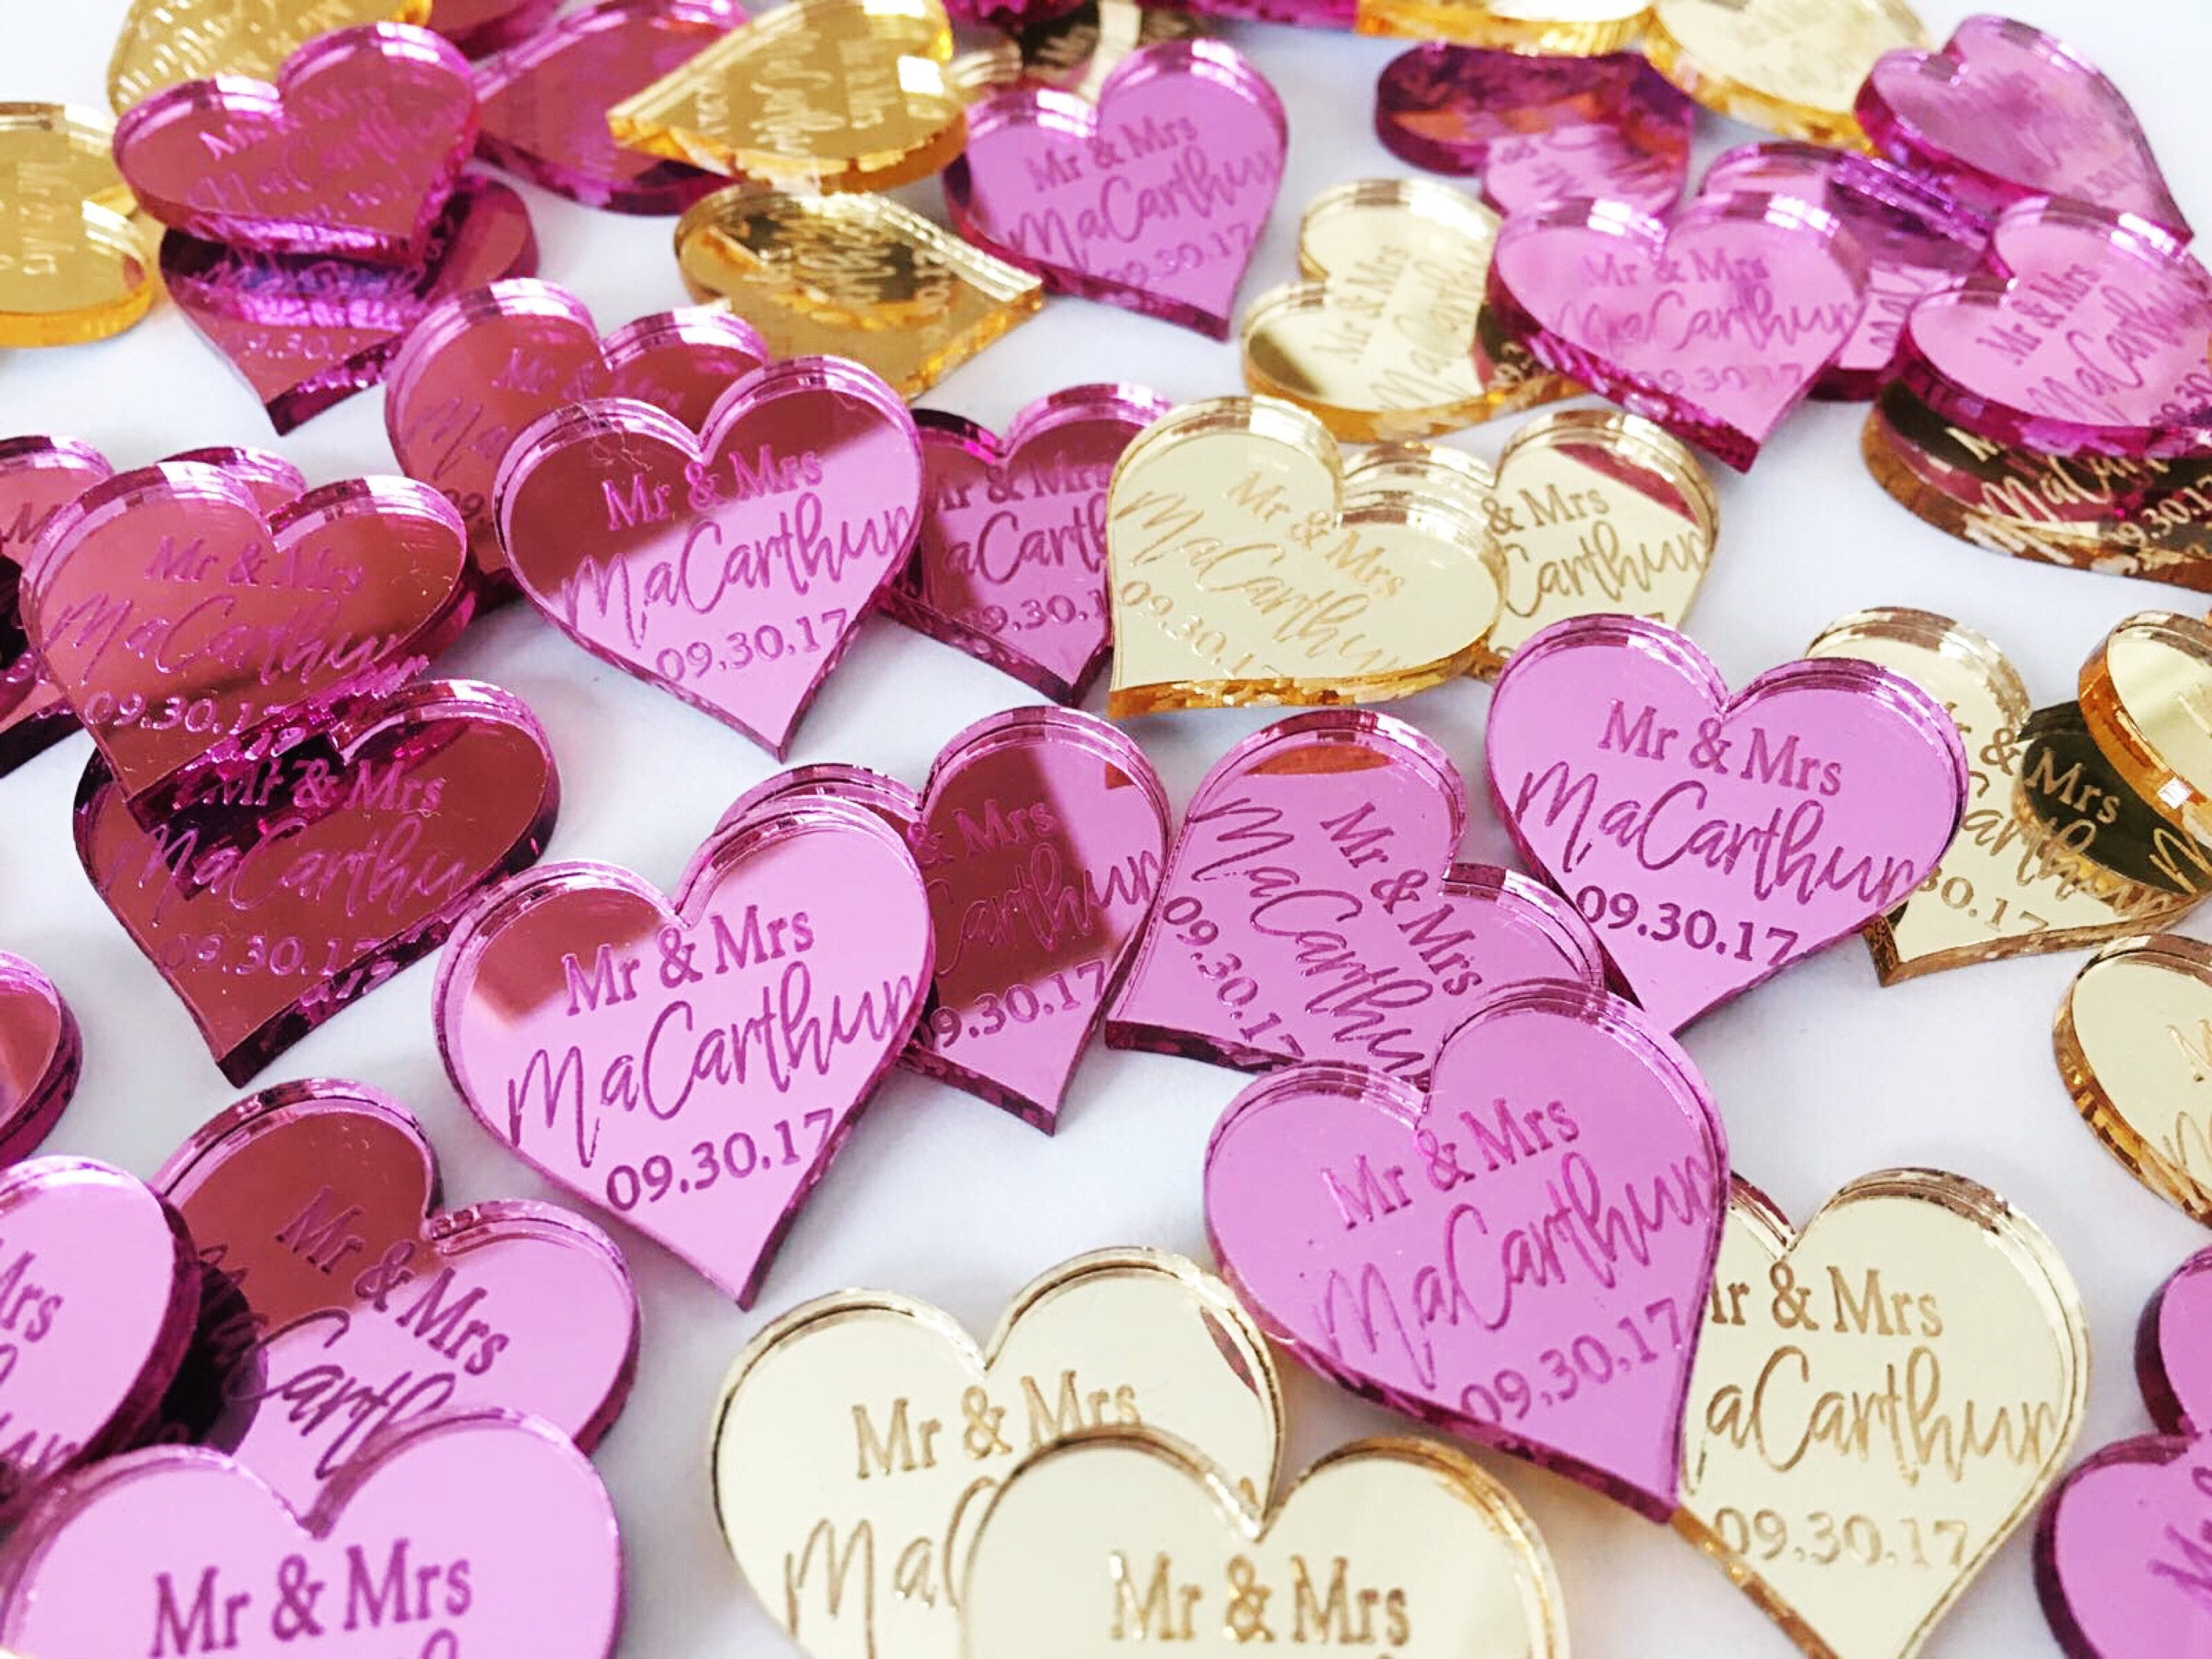 Personalised wedding acrylic heart favours engraved